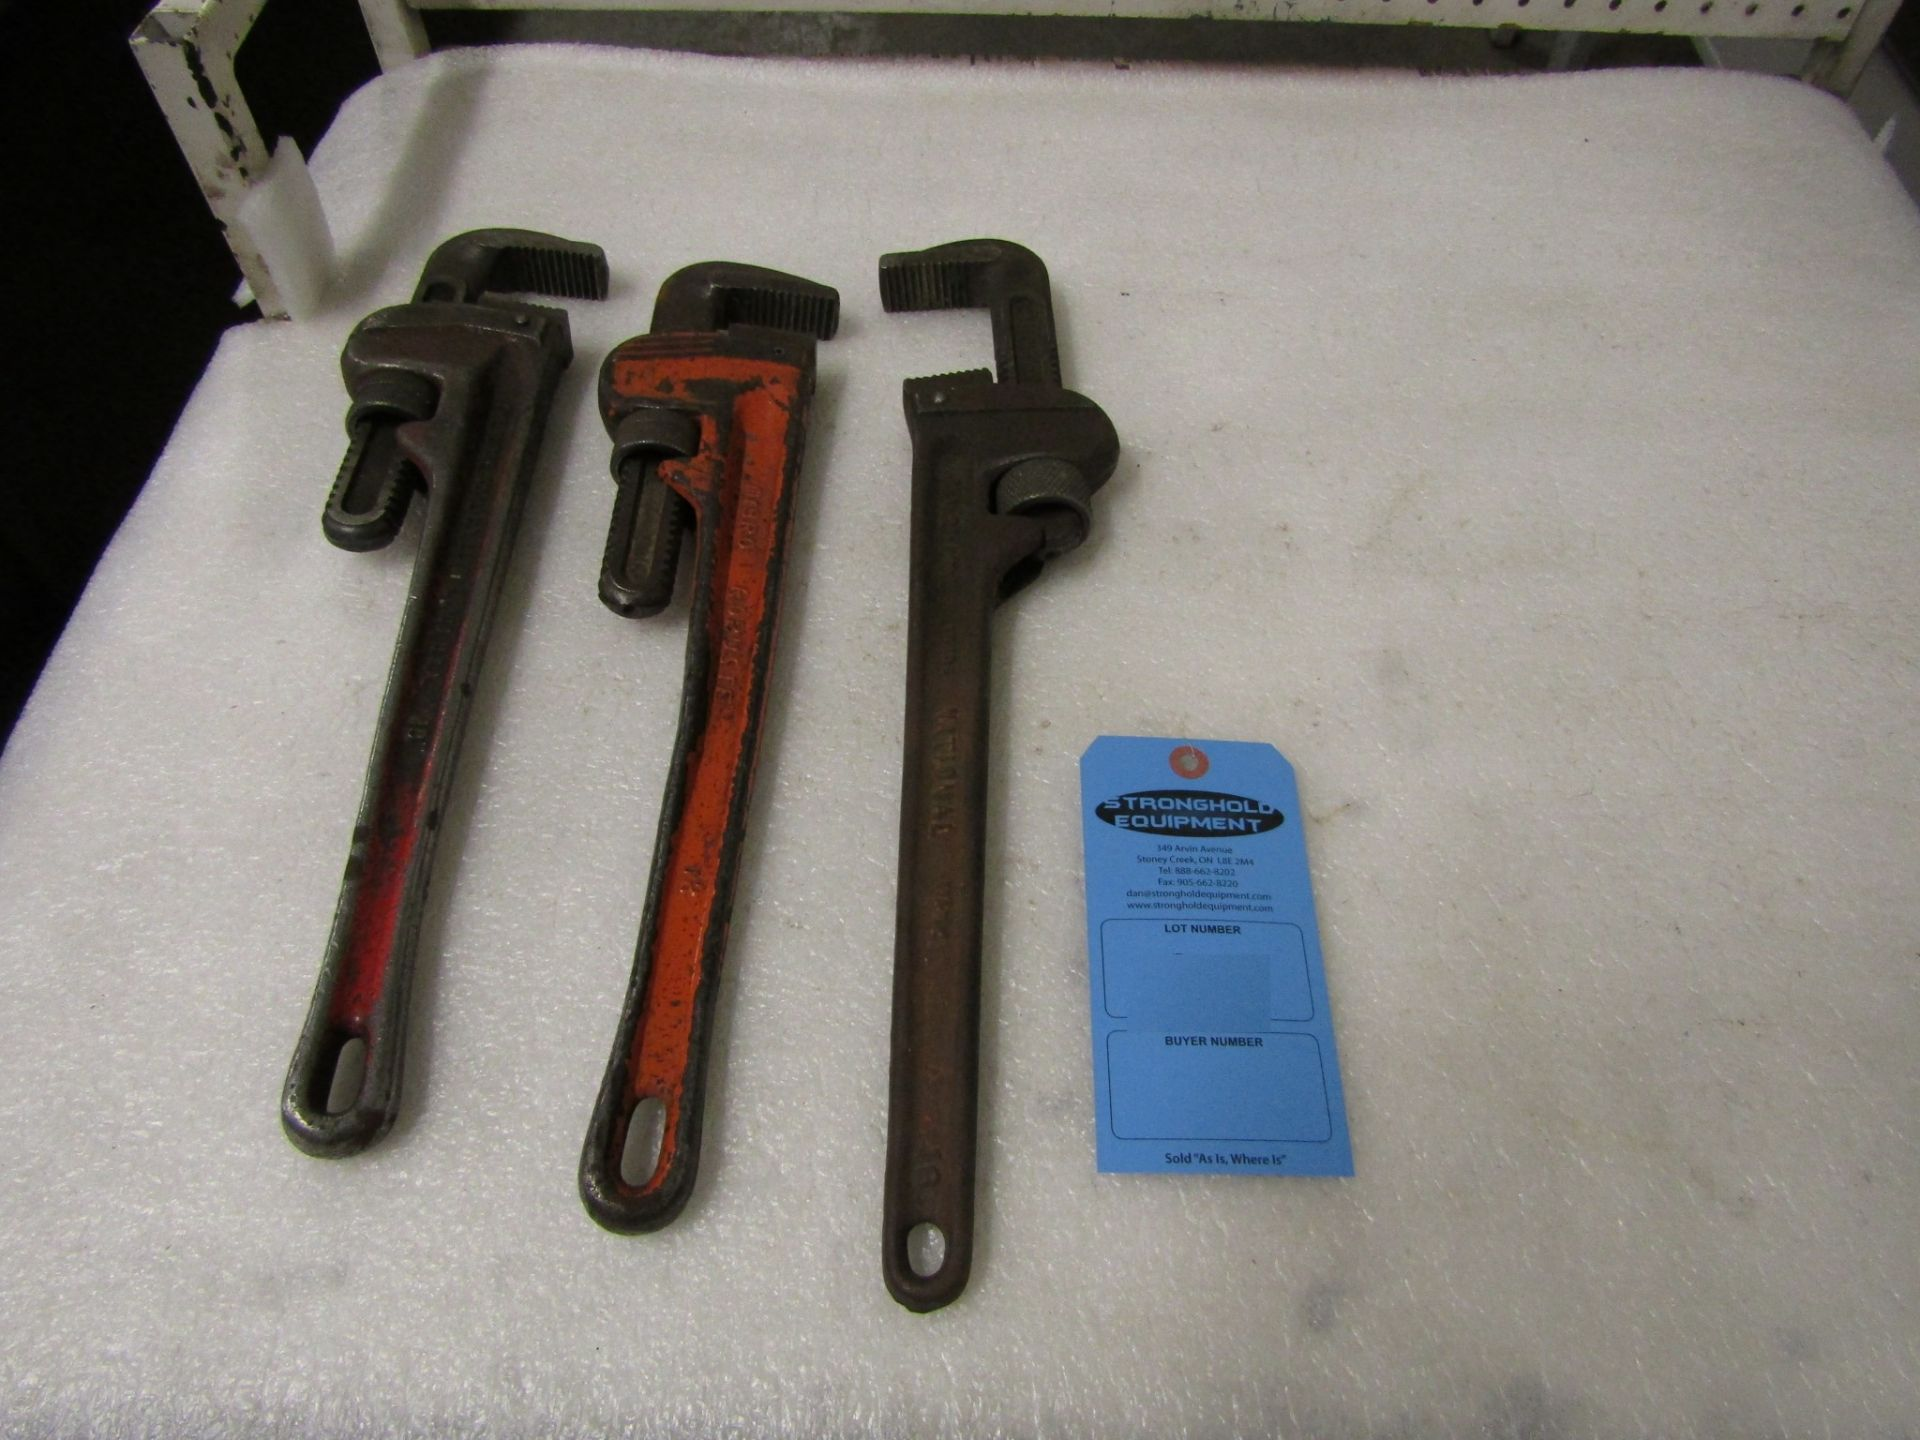 Lot 22 - Lot of 3 Pipe Wrenches - brand new